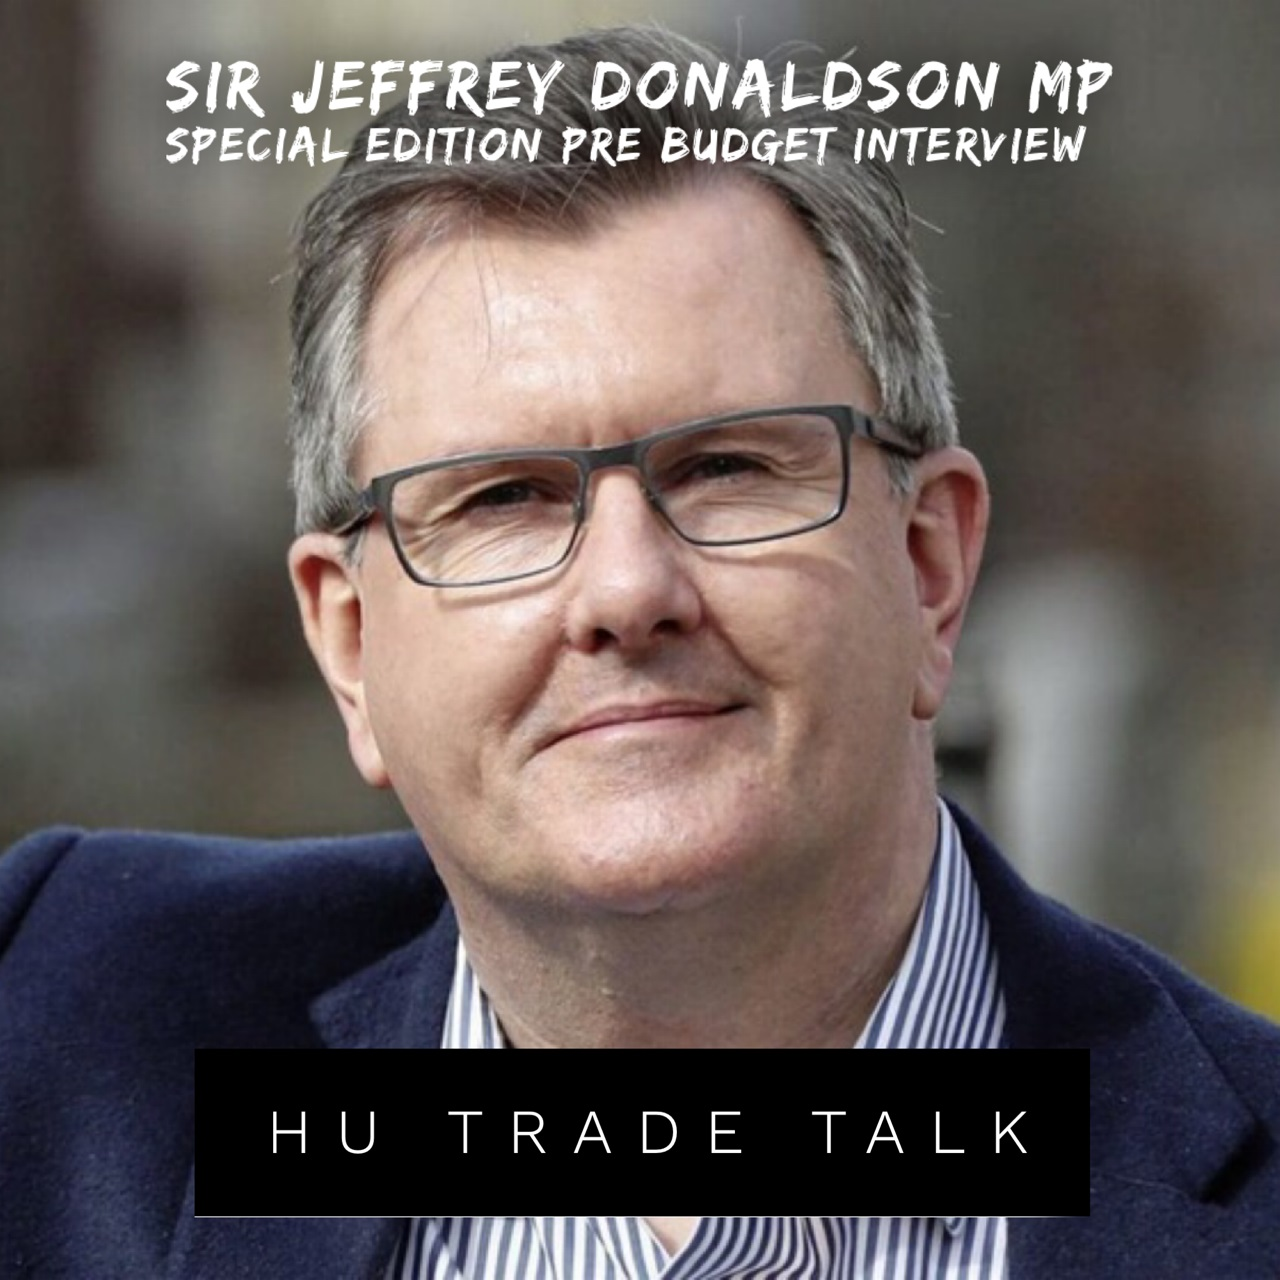 PODCAST HU Trade Talk Speaks With Sir Jeffrey Donaldson Ahead Of UK Budget